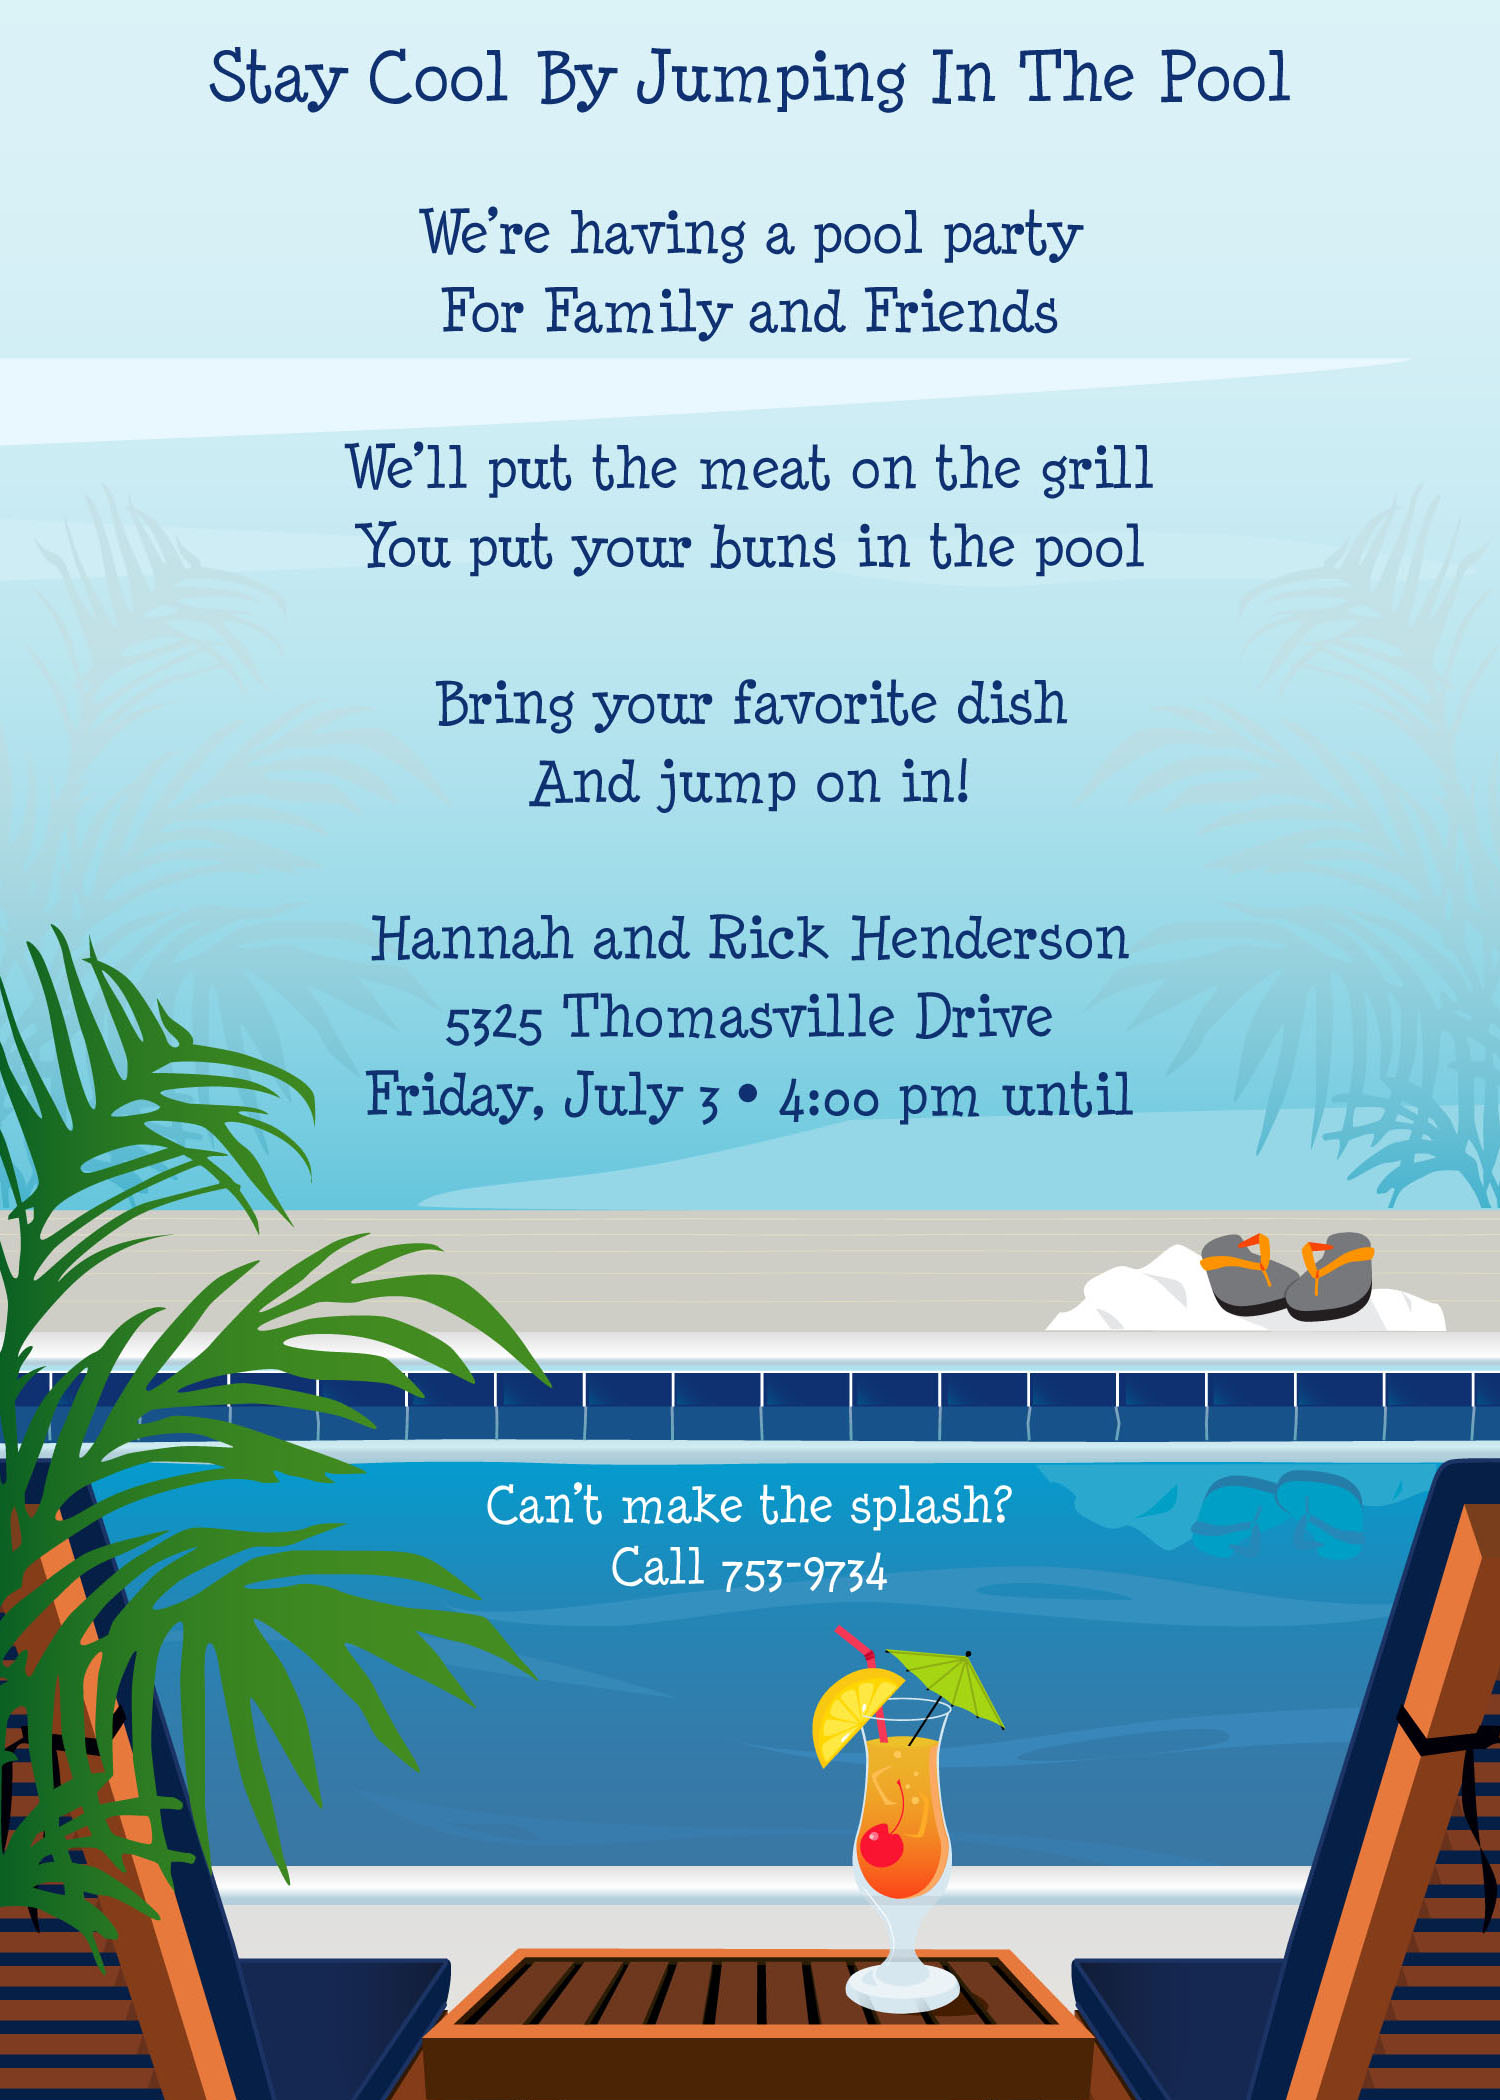 Serenity at the Pool  - Hang out poolside and keep cool this summer.  Invite your gusts with this great digital print invitation that is decorated with palm trees, pool chairs, and the cool blue water.This is a great invitation for a Pool side party!  Printed on premium 100lb cardstock, you will love the rich color of this unique digitally created design. Not available blank. Includes white envelope.